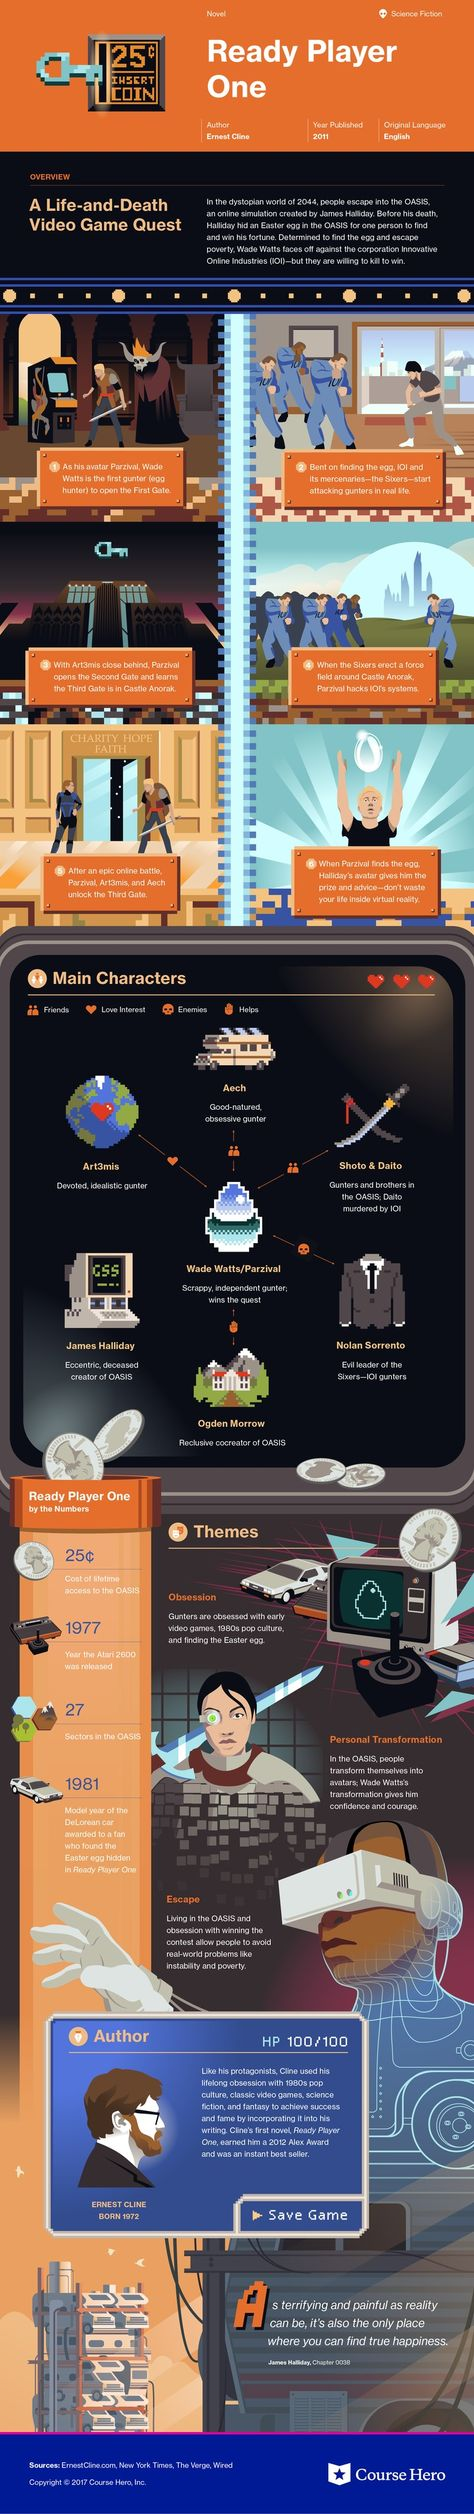 Check out This infographic for Ernest Cline's Ready Player One offers